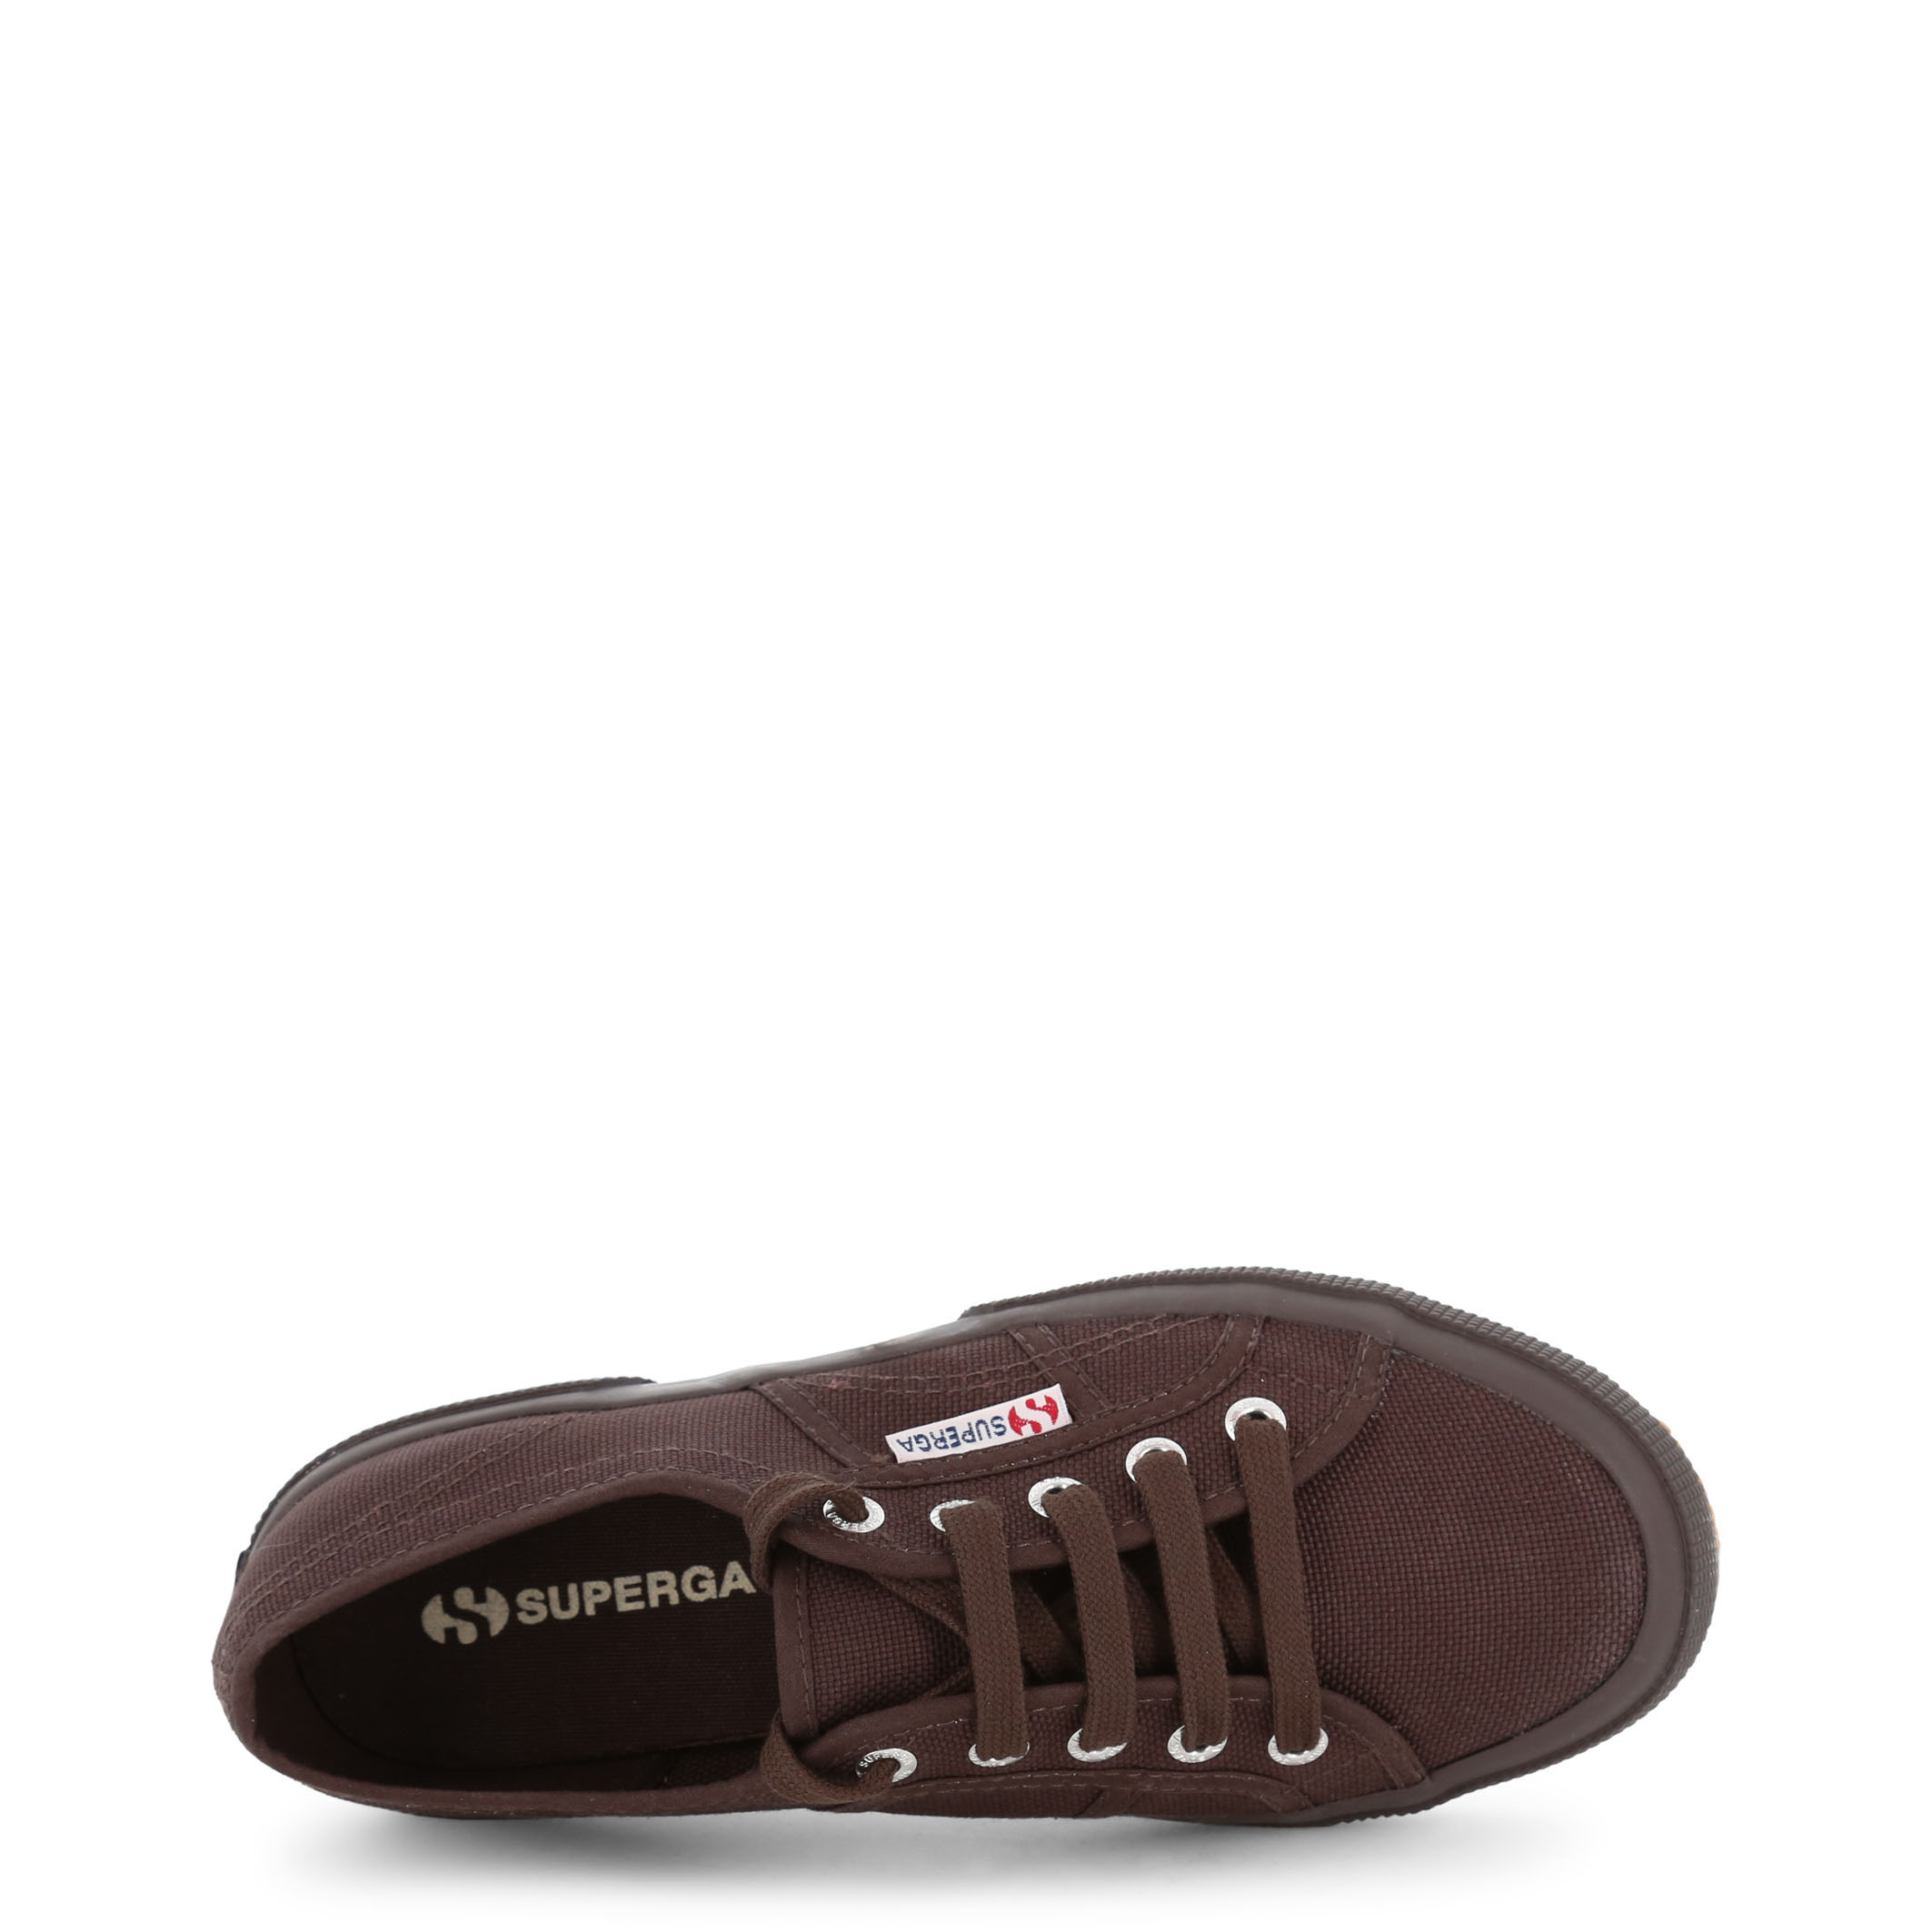 Chaussures de ville  Superga 2750-COTU-CLASSIC brown